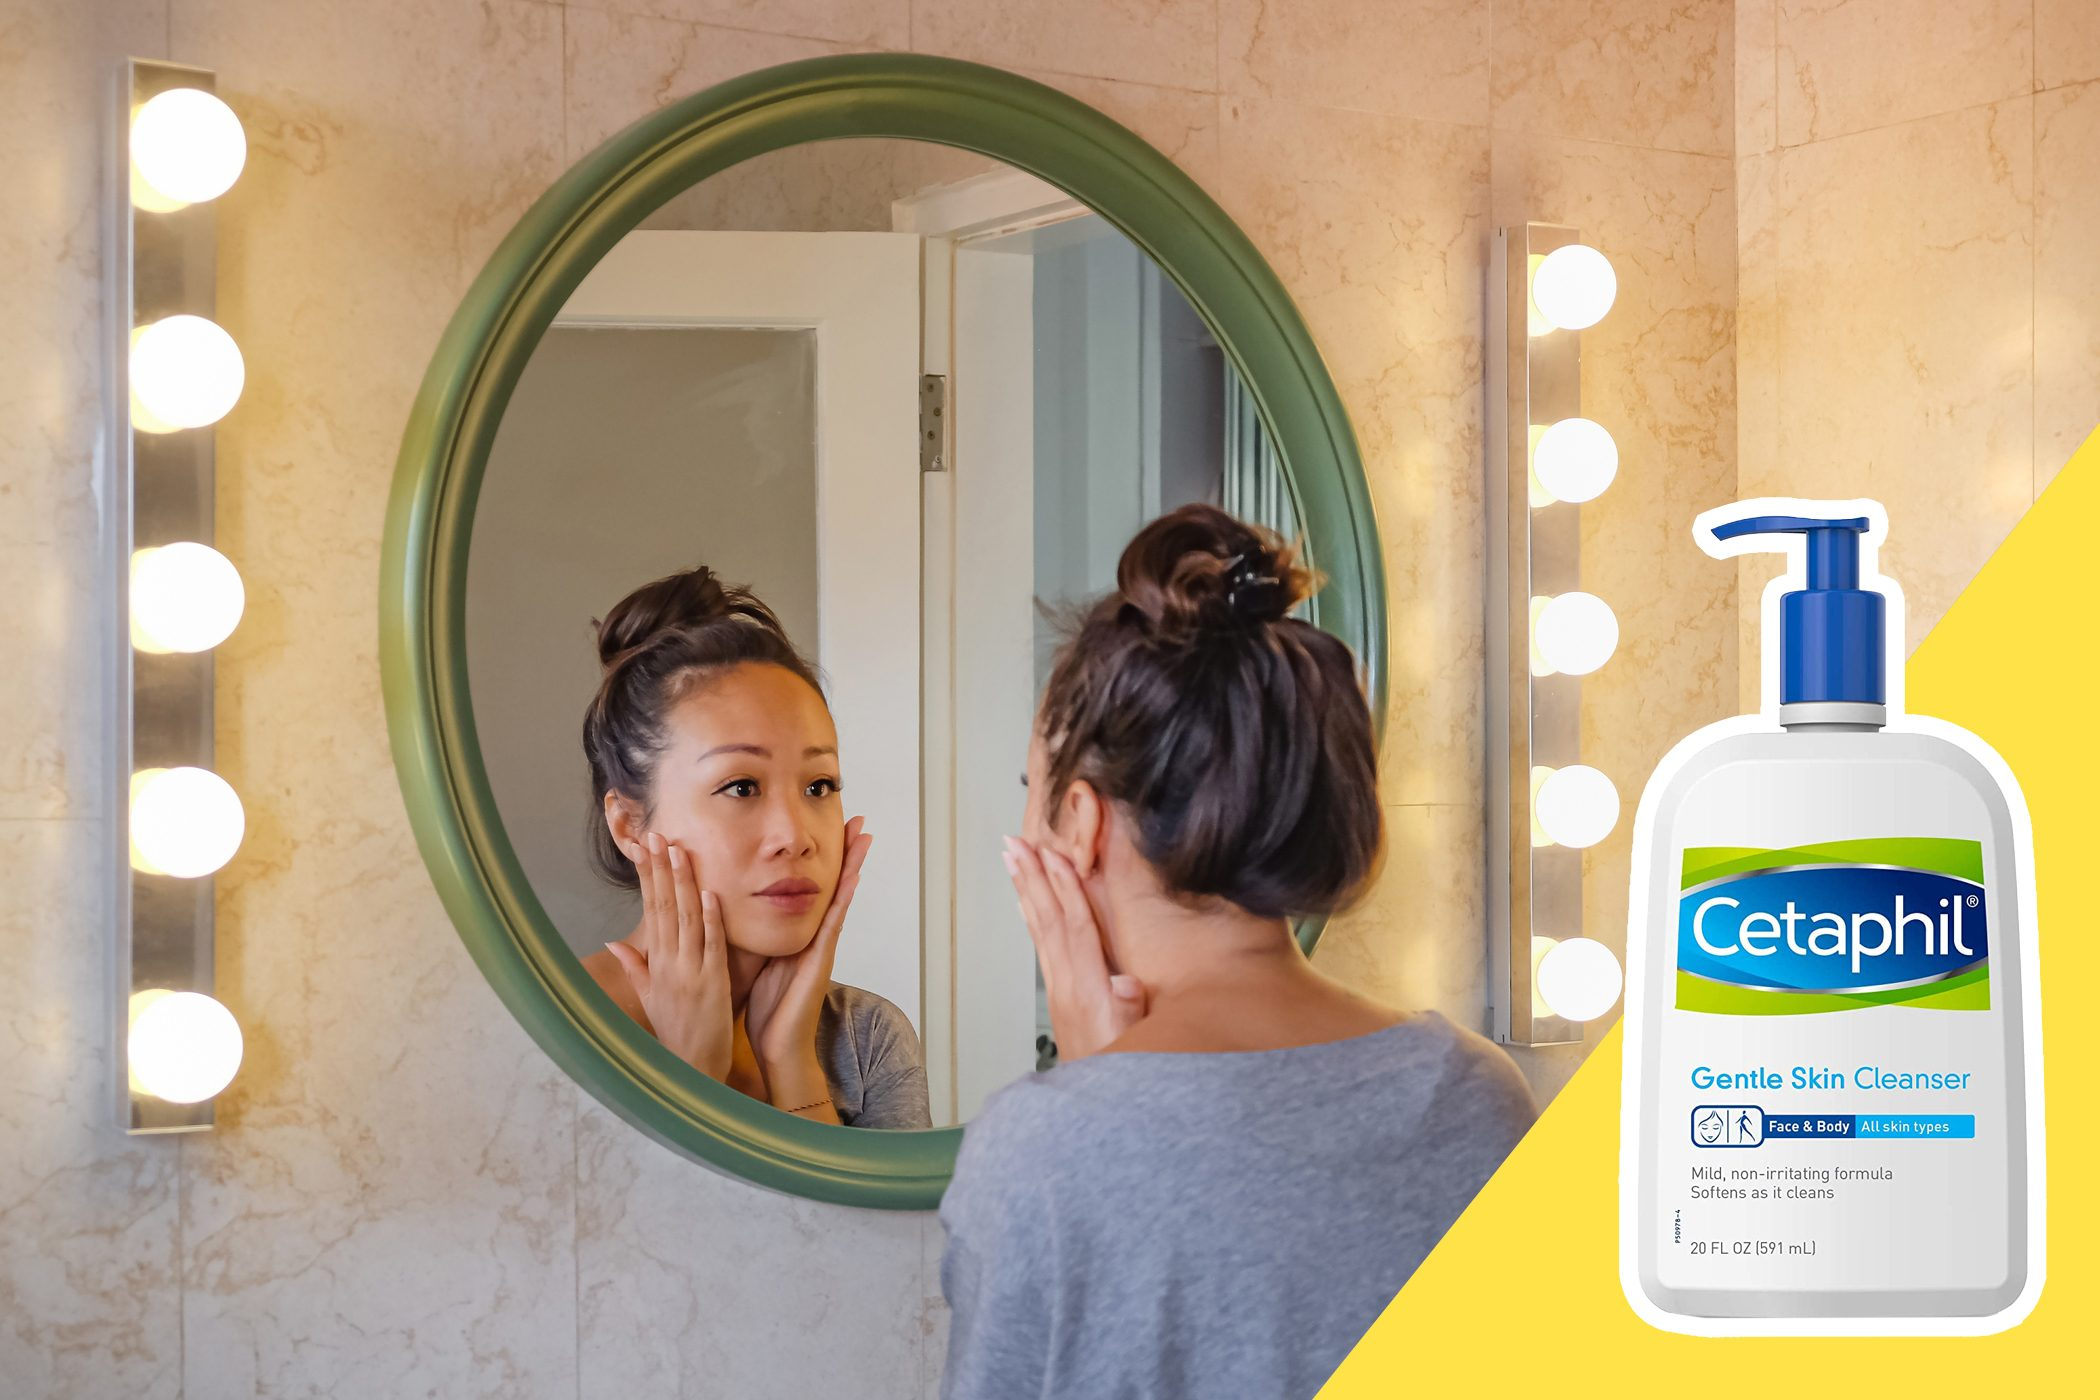 inset of Cetaphil on photo of woman inspecting her skin